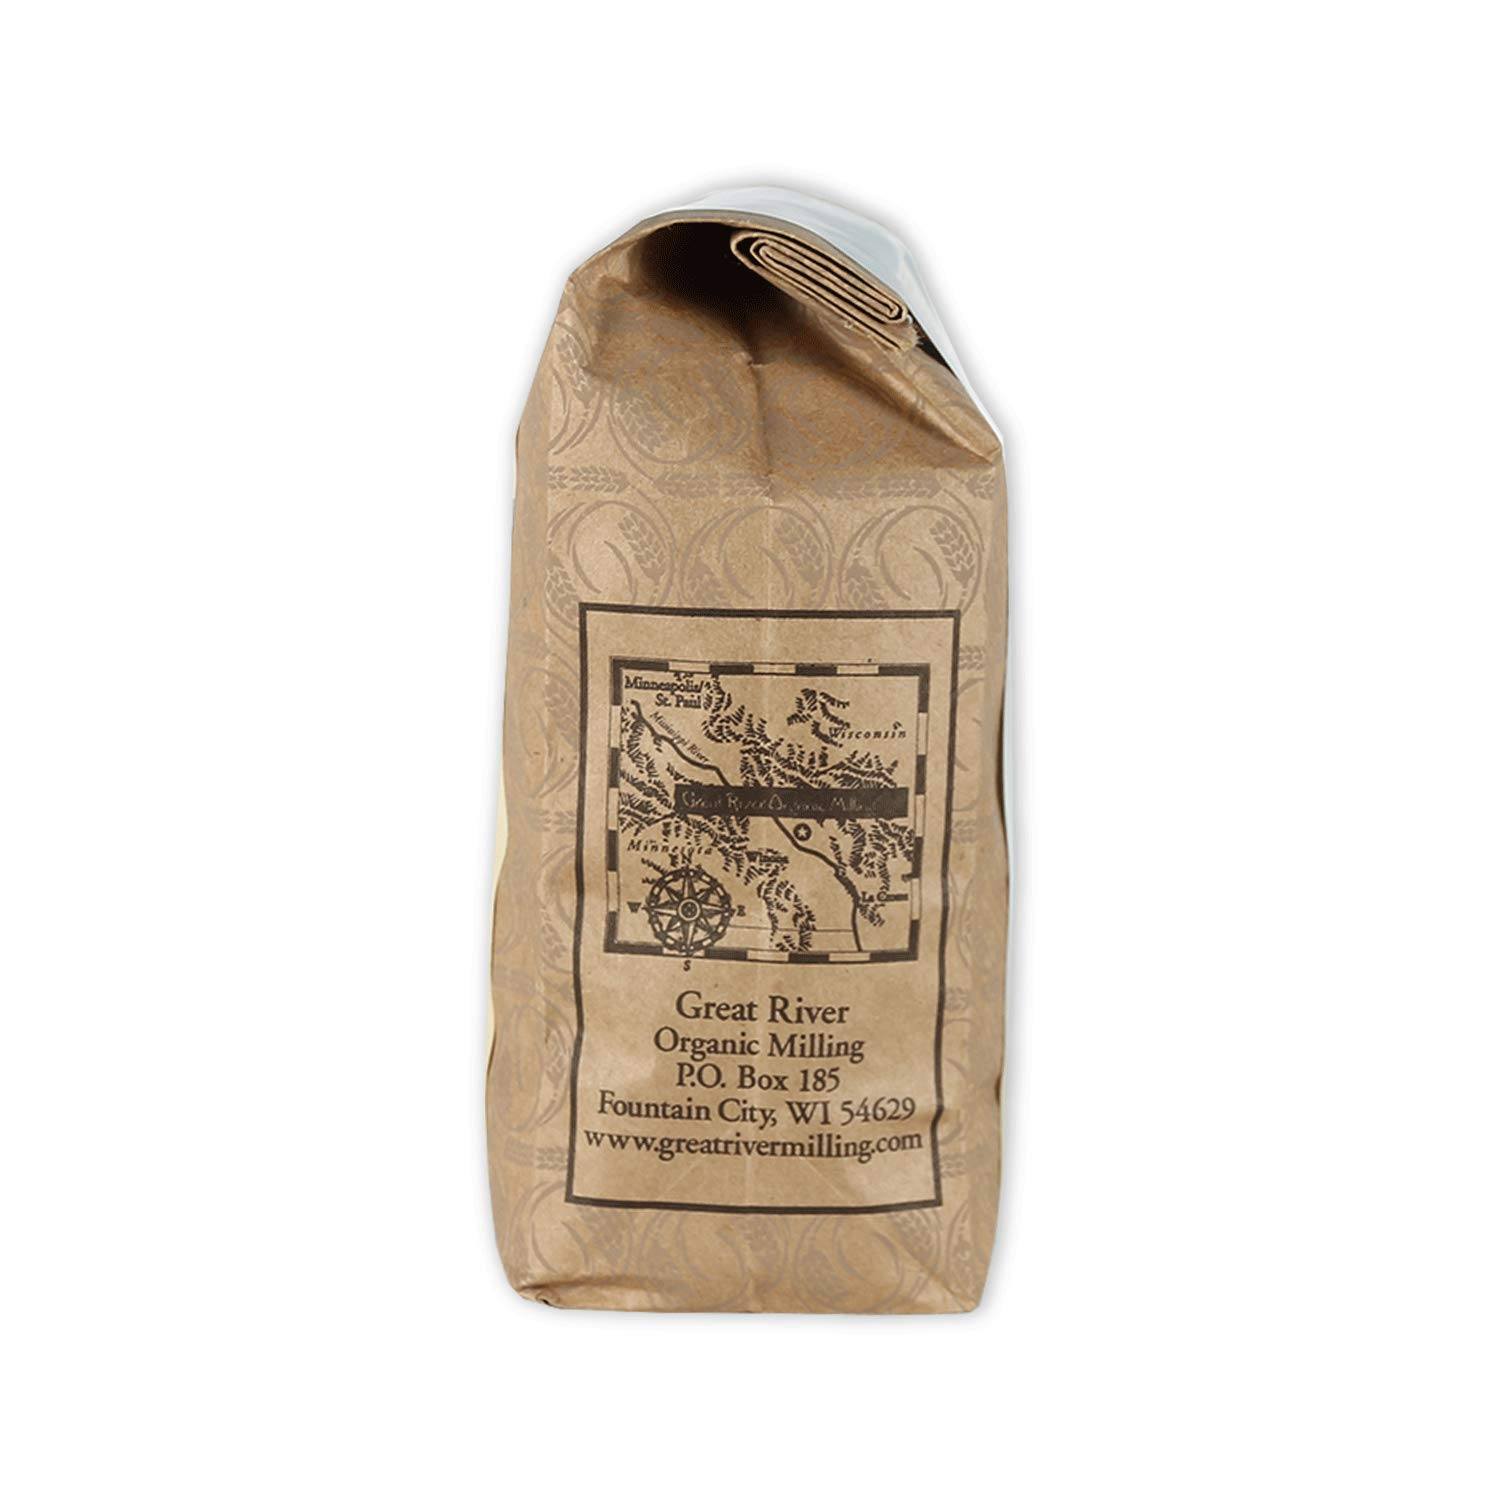 Great River Organic Milling Organic Barley Flour, 2 Pound(Pack of 4) by Great River Organic Milling (Image #5)